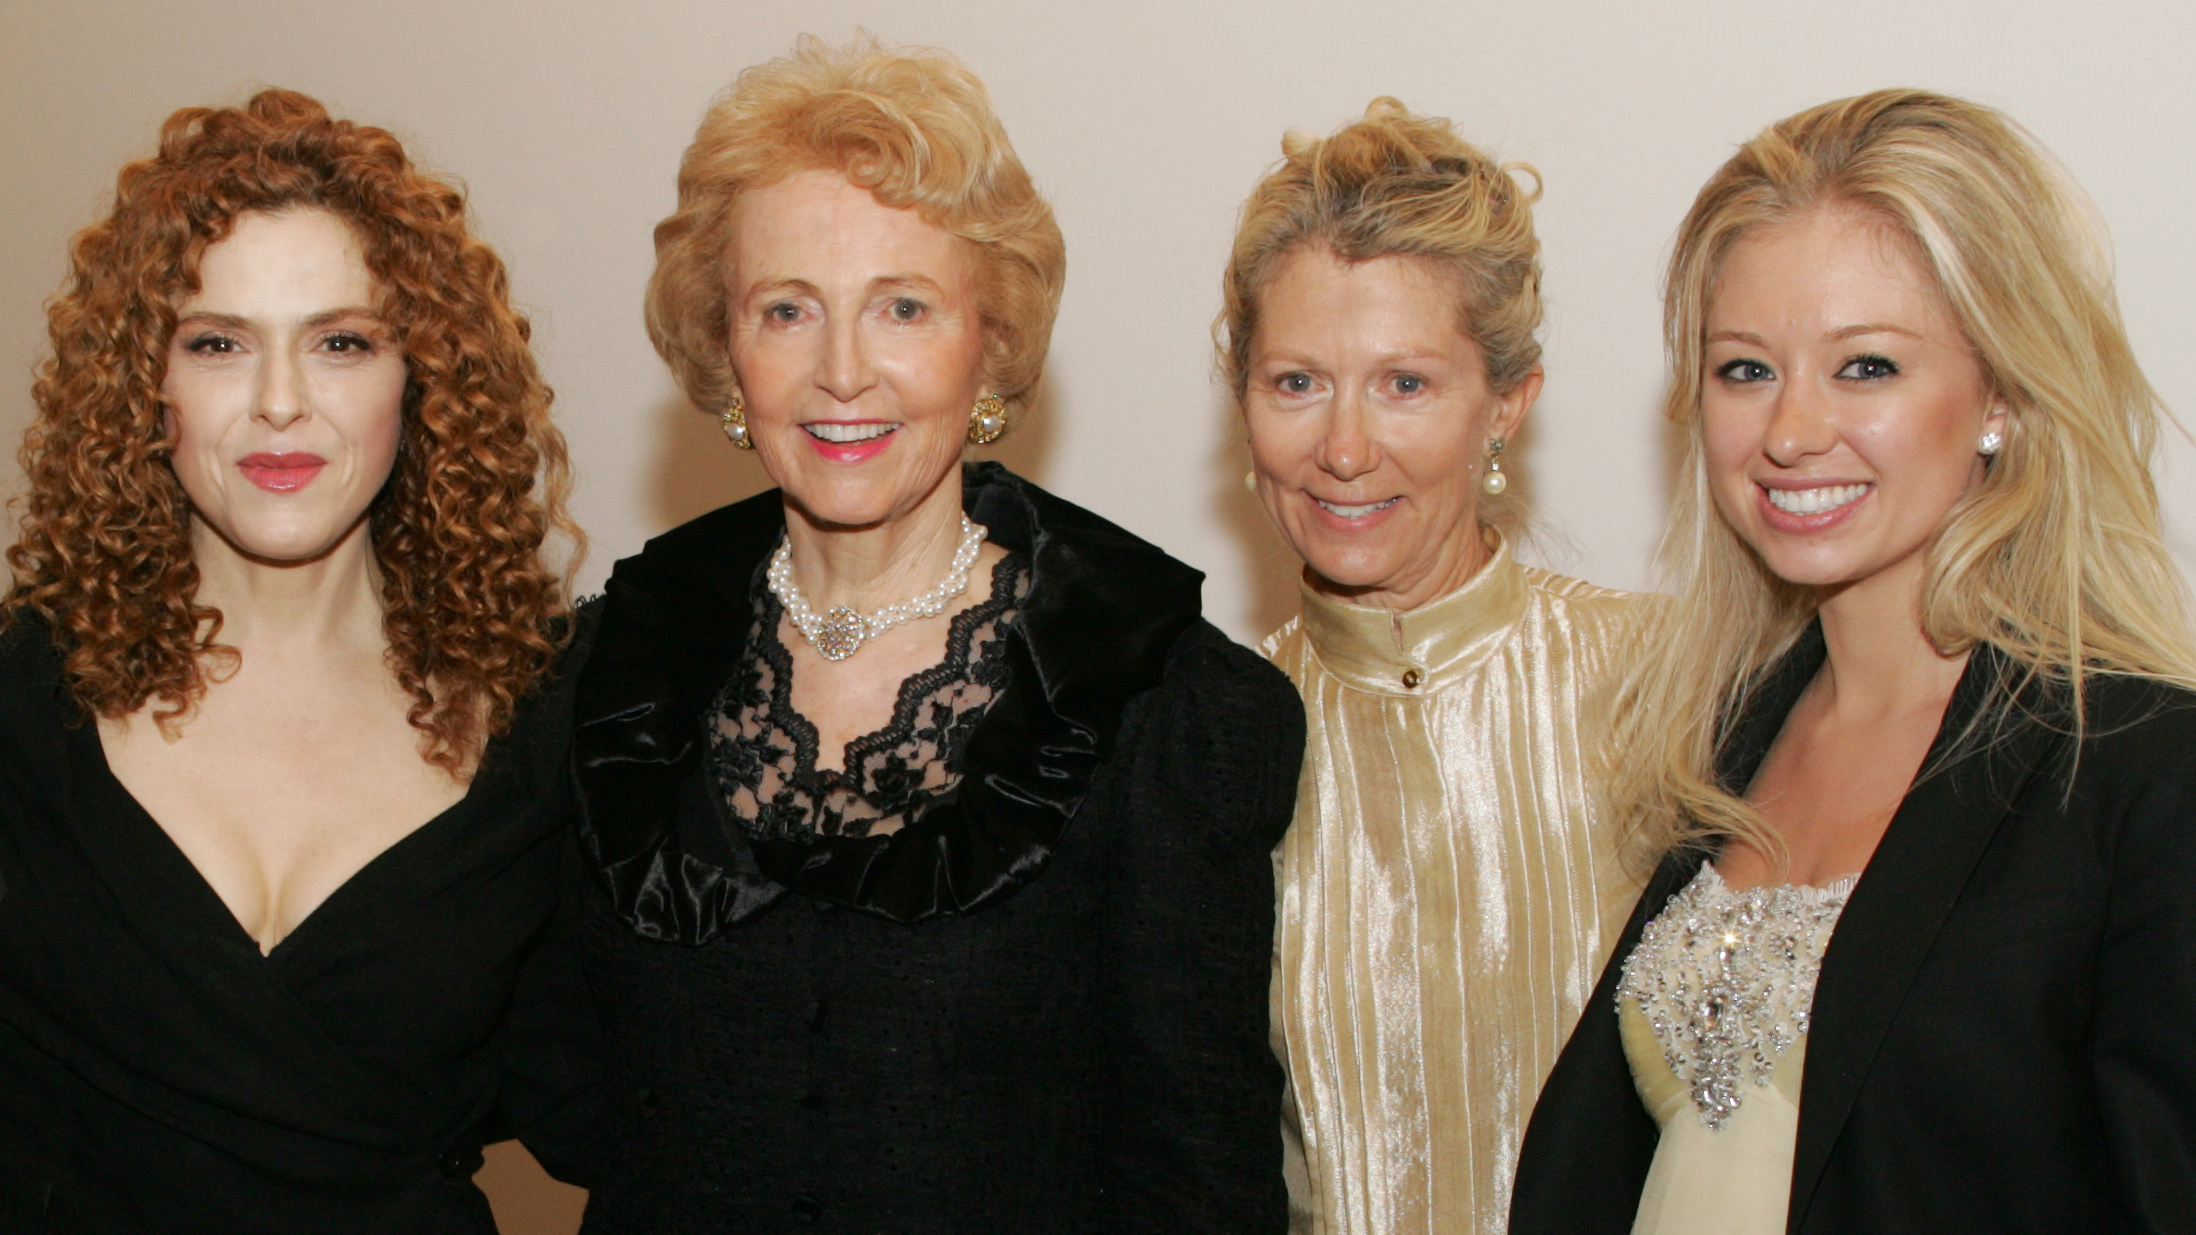 Bernadette Peters with Elaine J. Wold and others